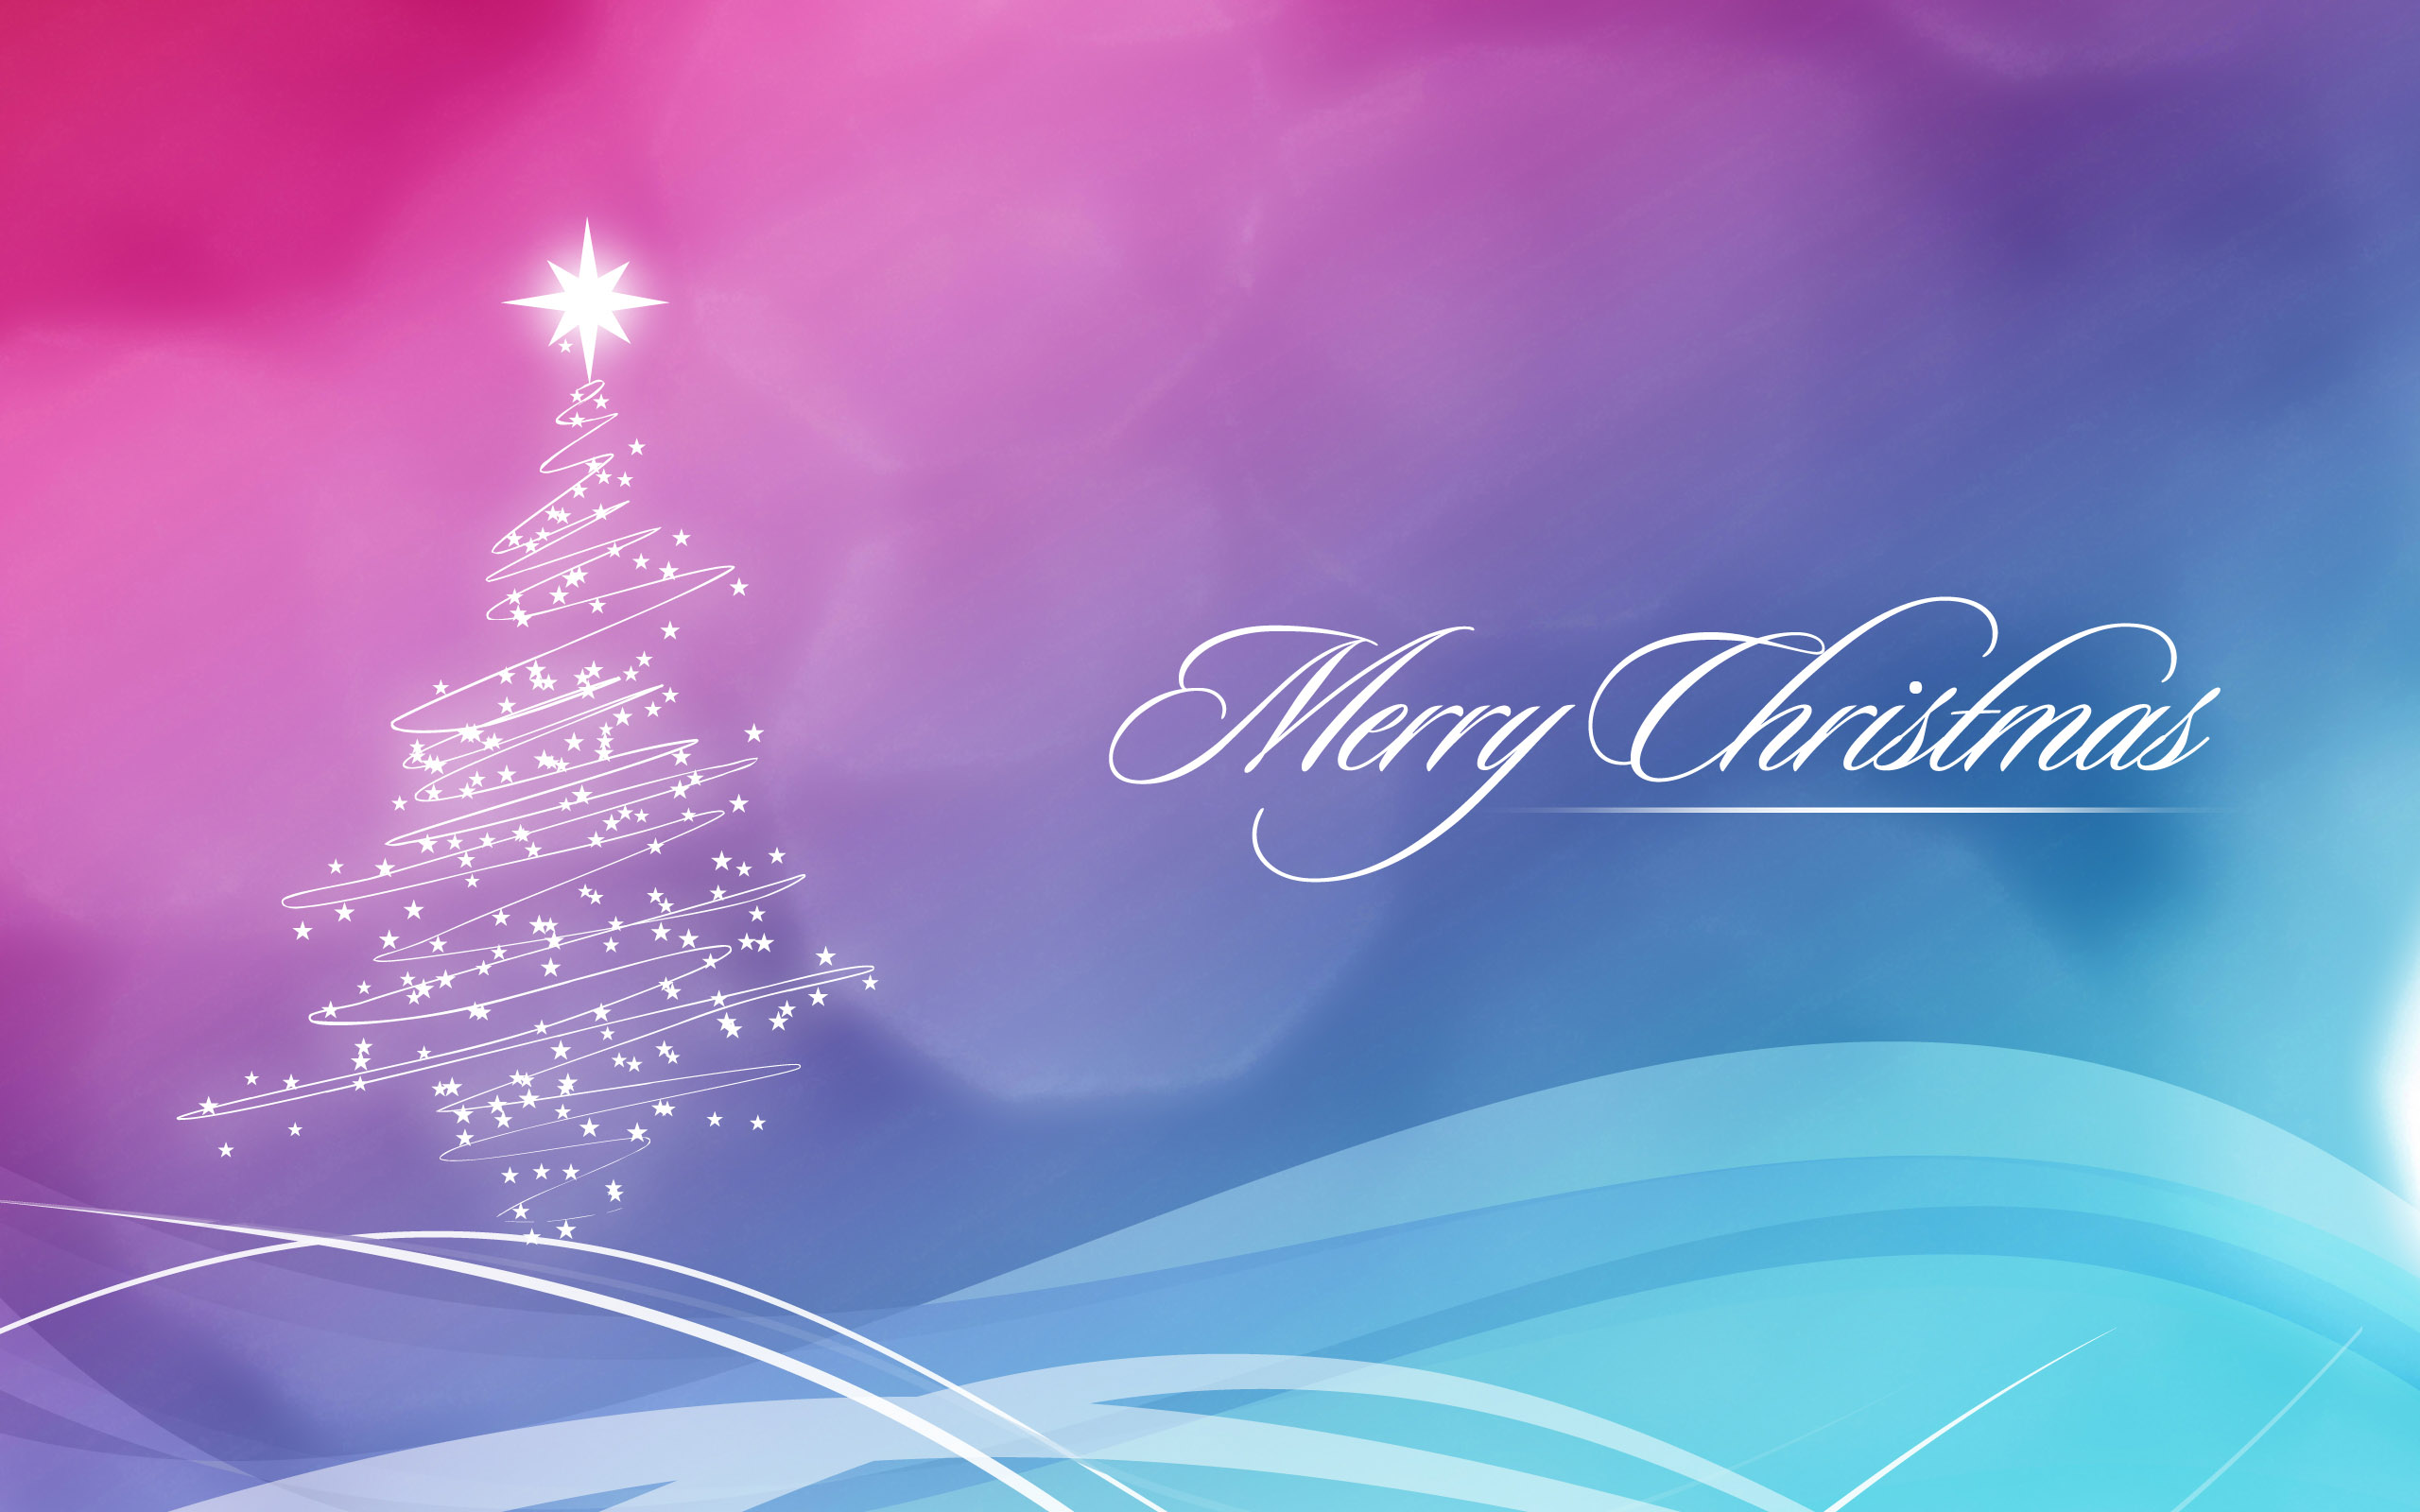 merry-christmas-wallpaper-hd-download-free.jpg